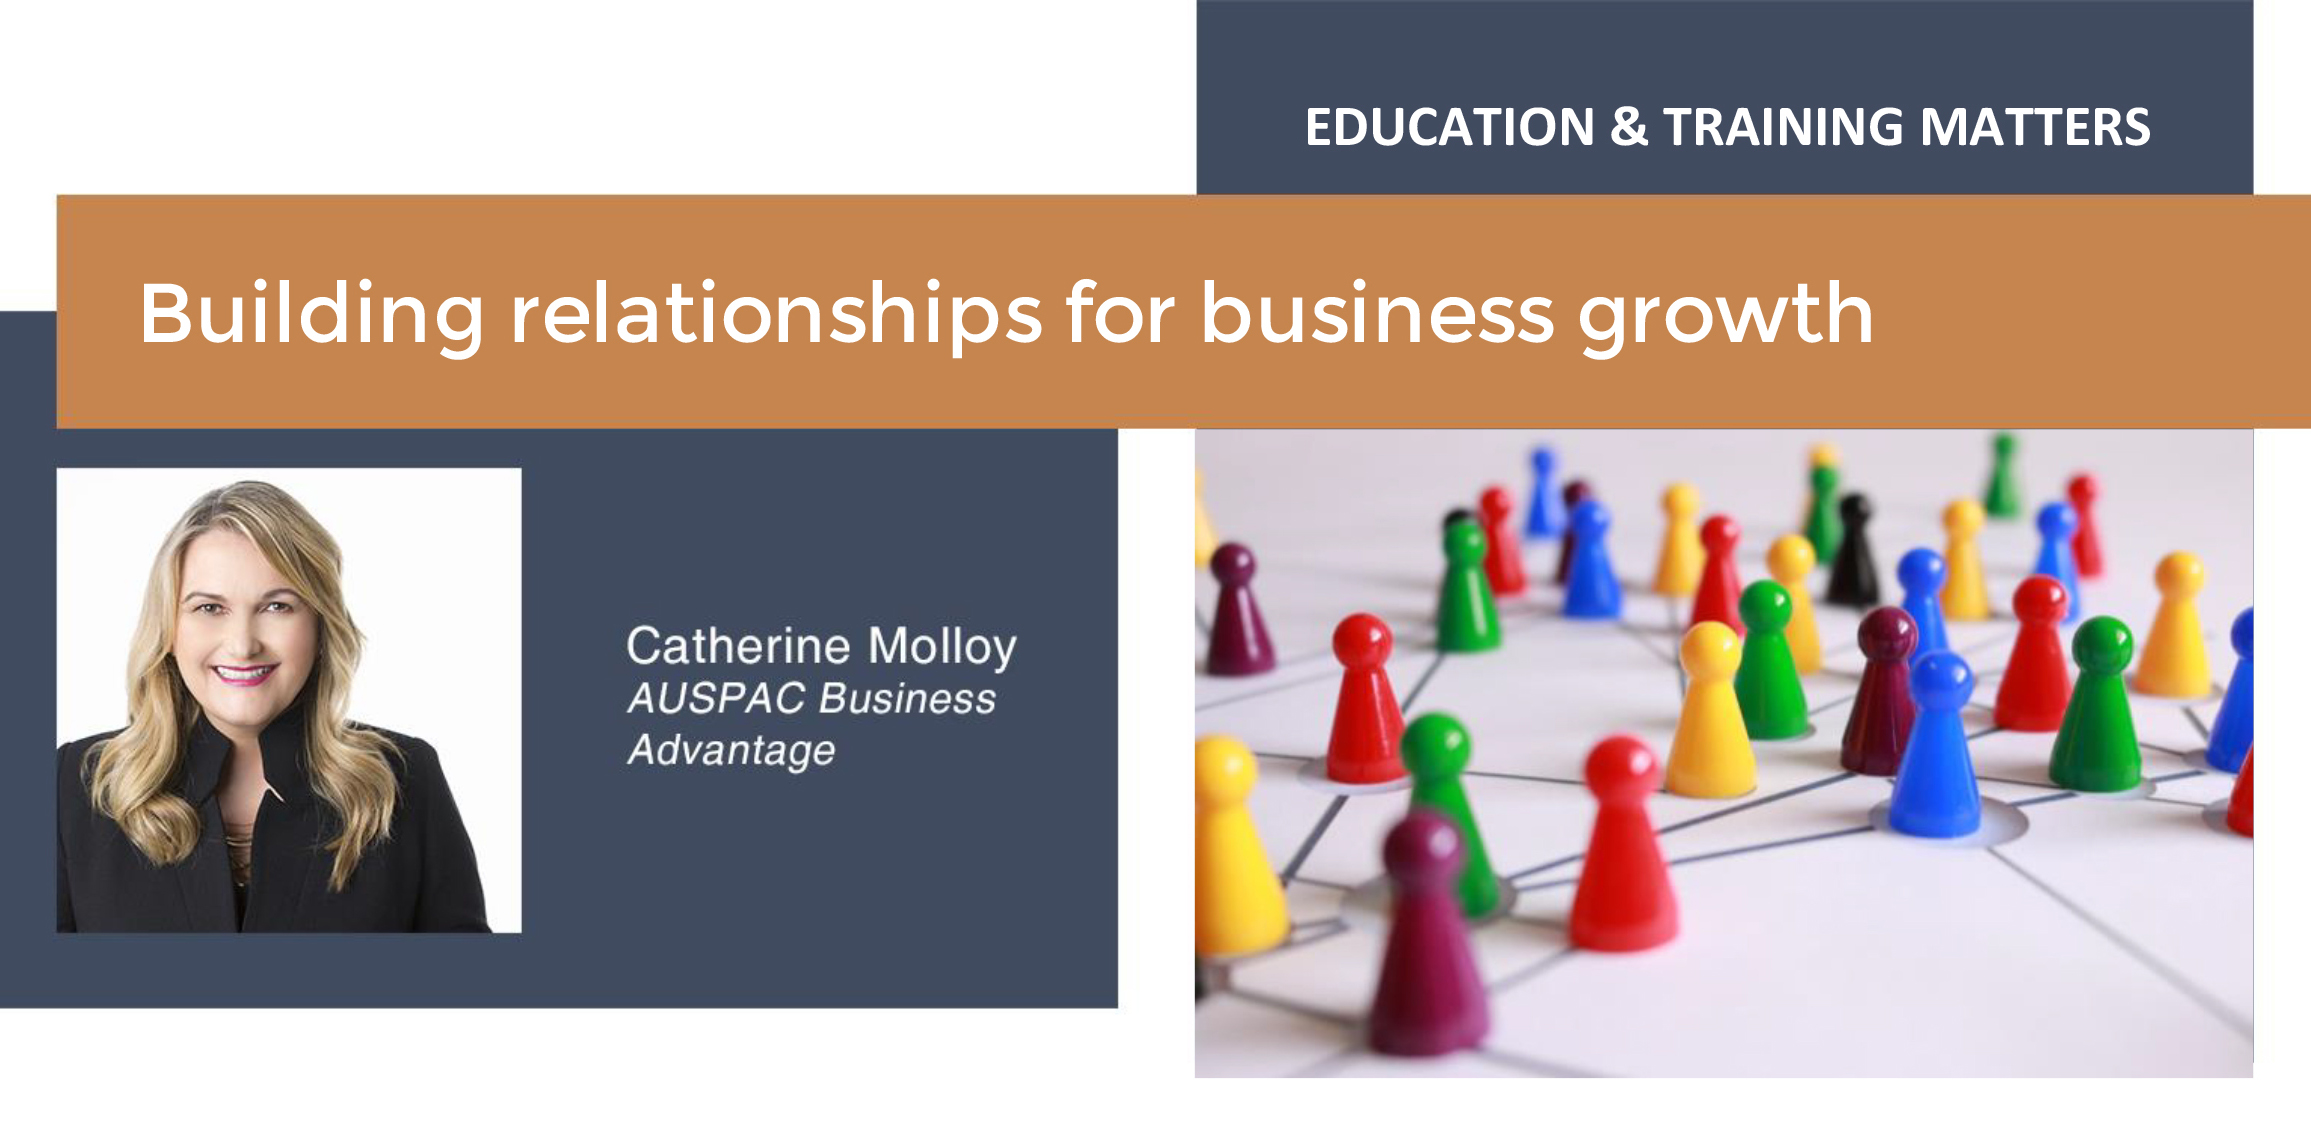 Building relationships for business growth